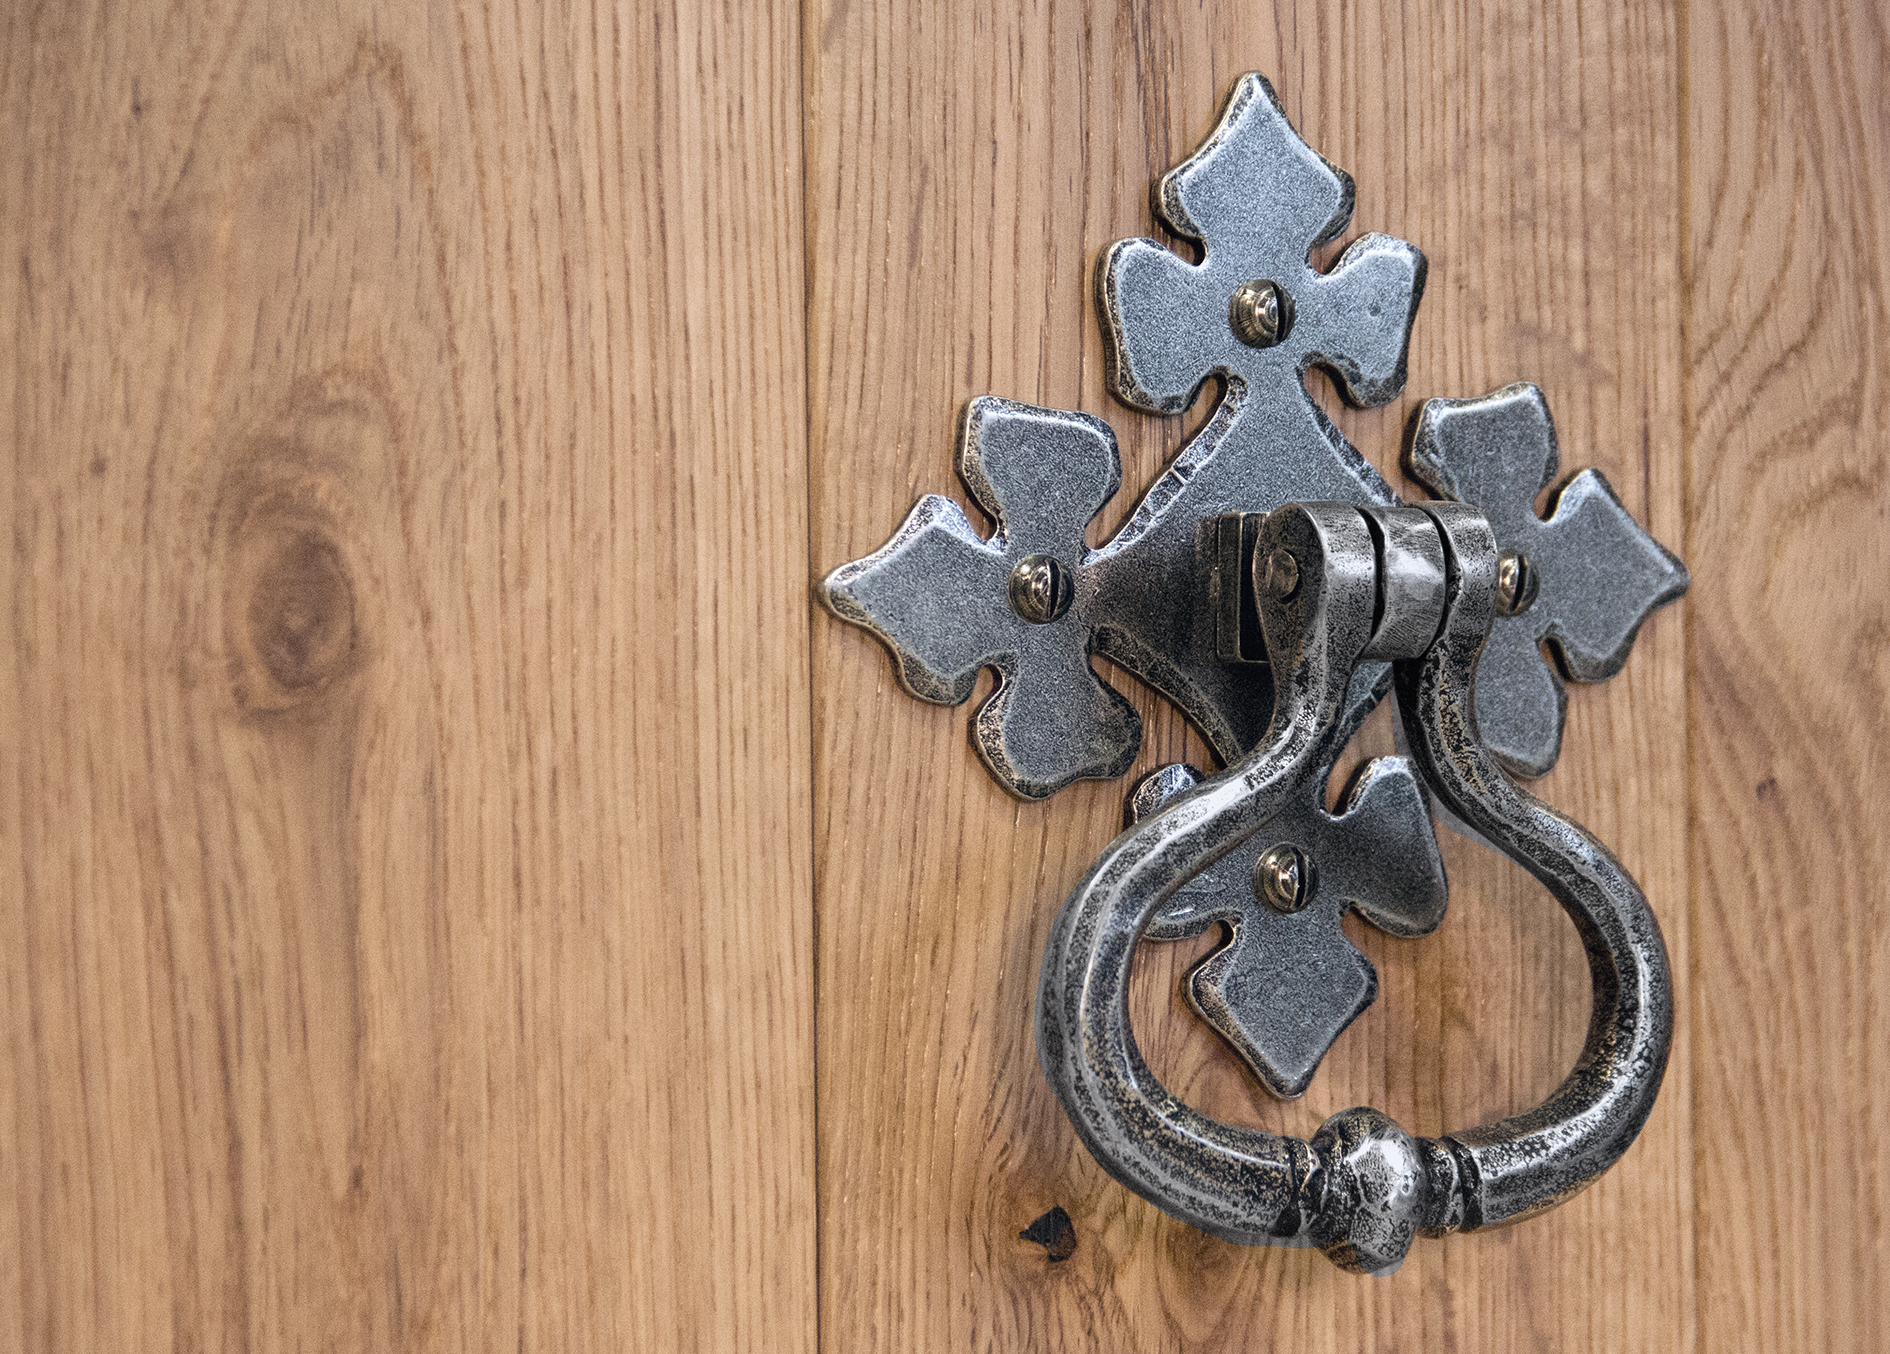 An image of a shakespeare door knocker in pewter.